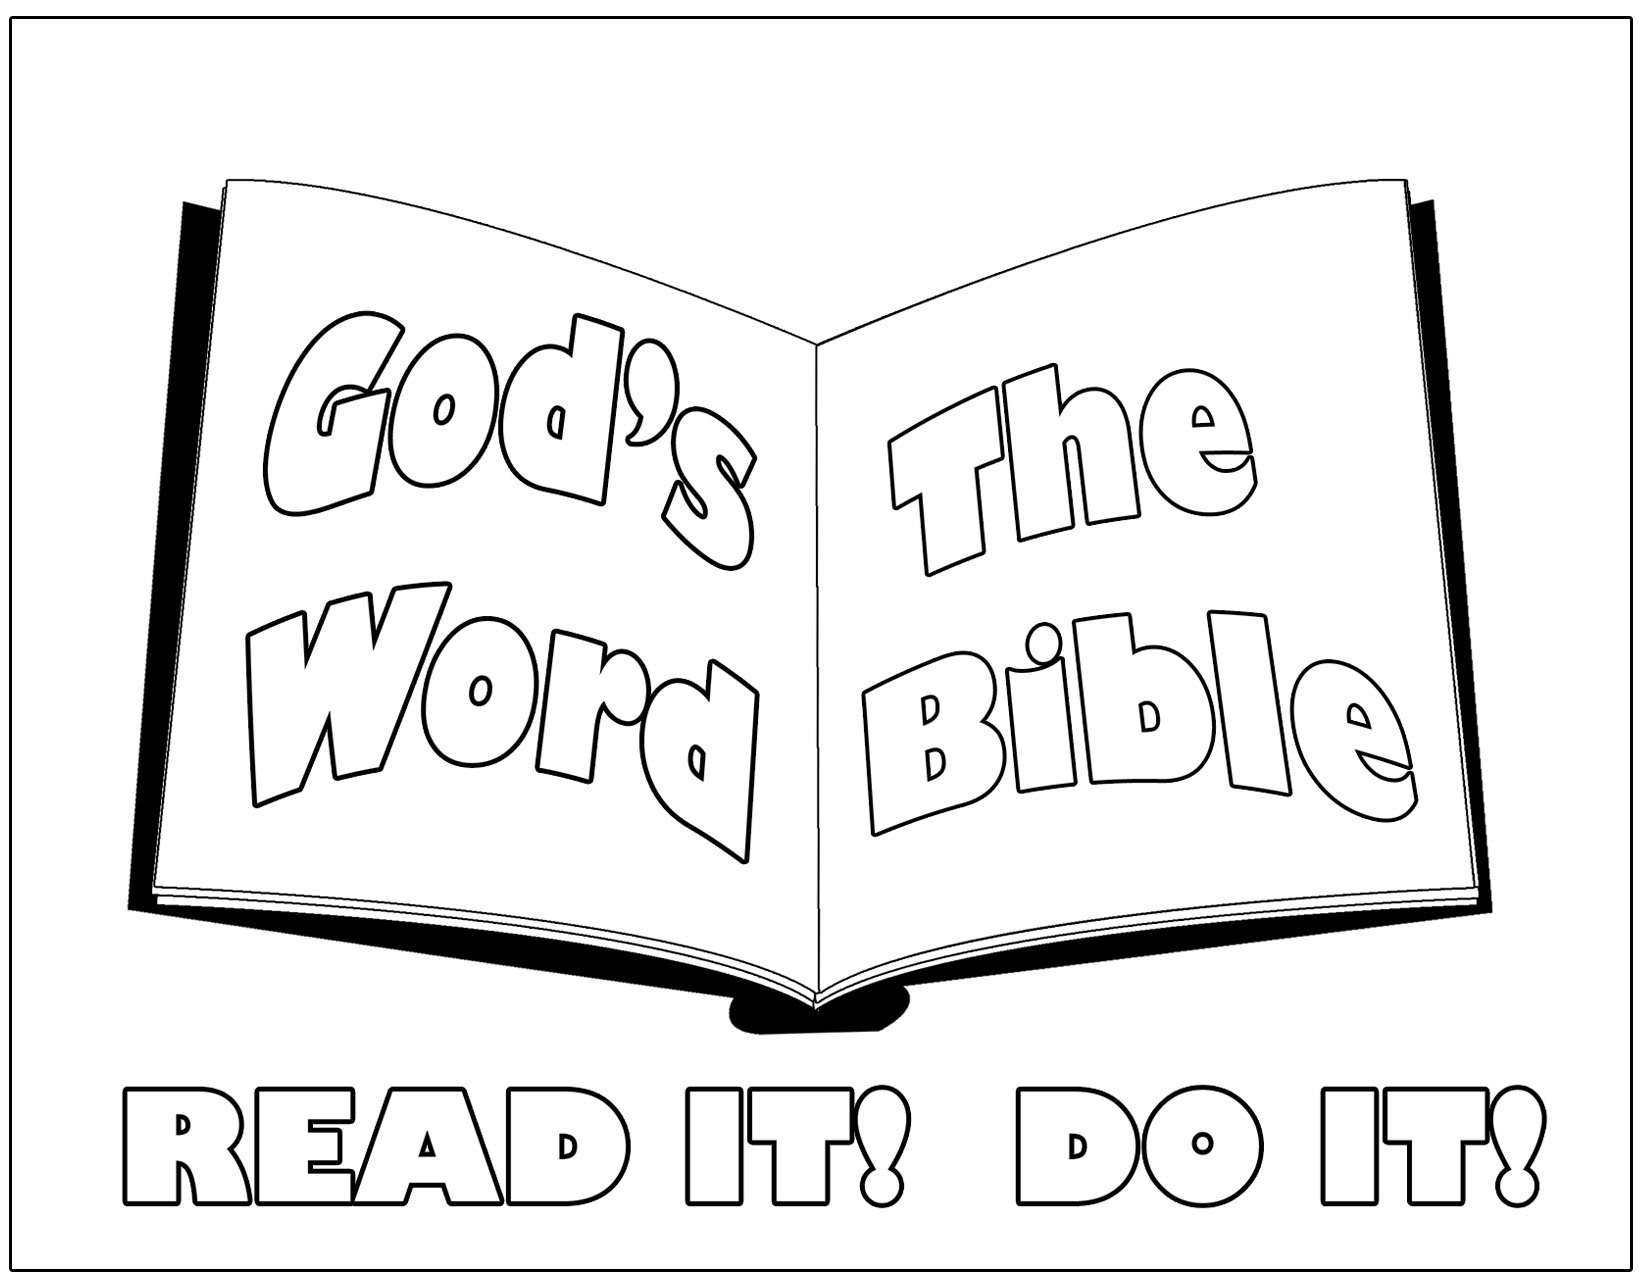 Coloring Pages Coloring Pages Bible Stories free printable bible coloring pages for kids pages